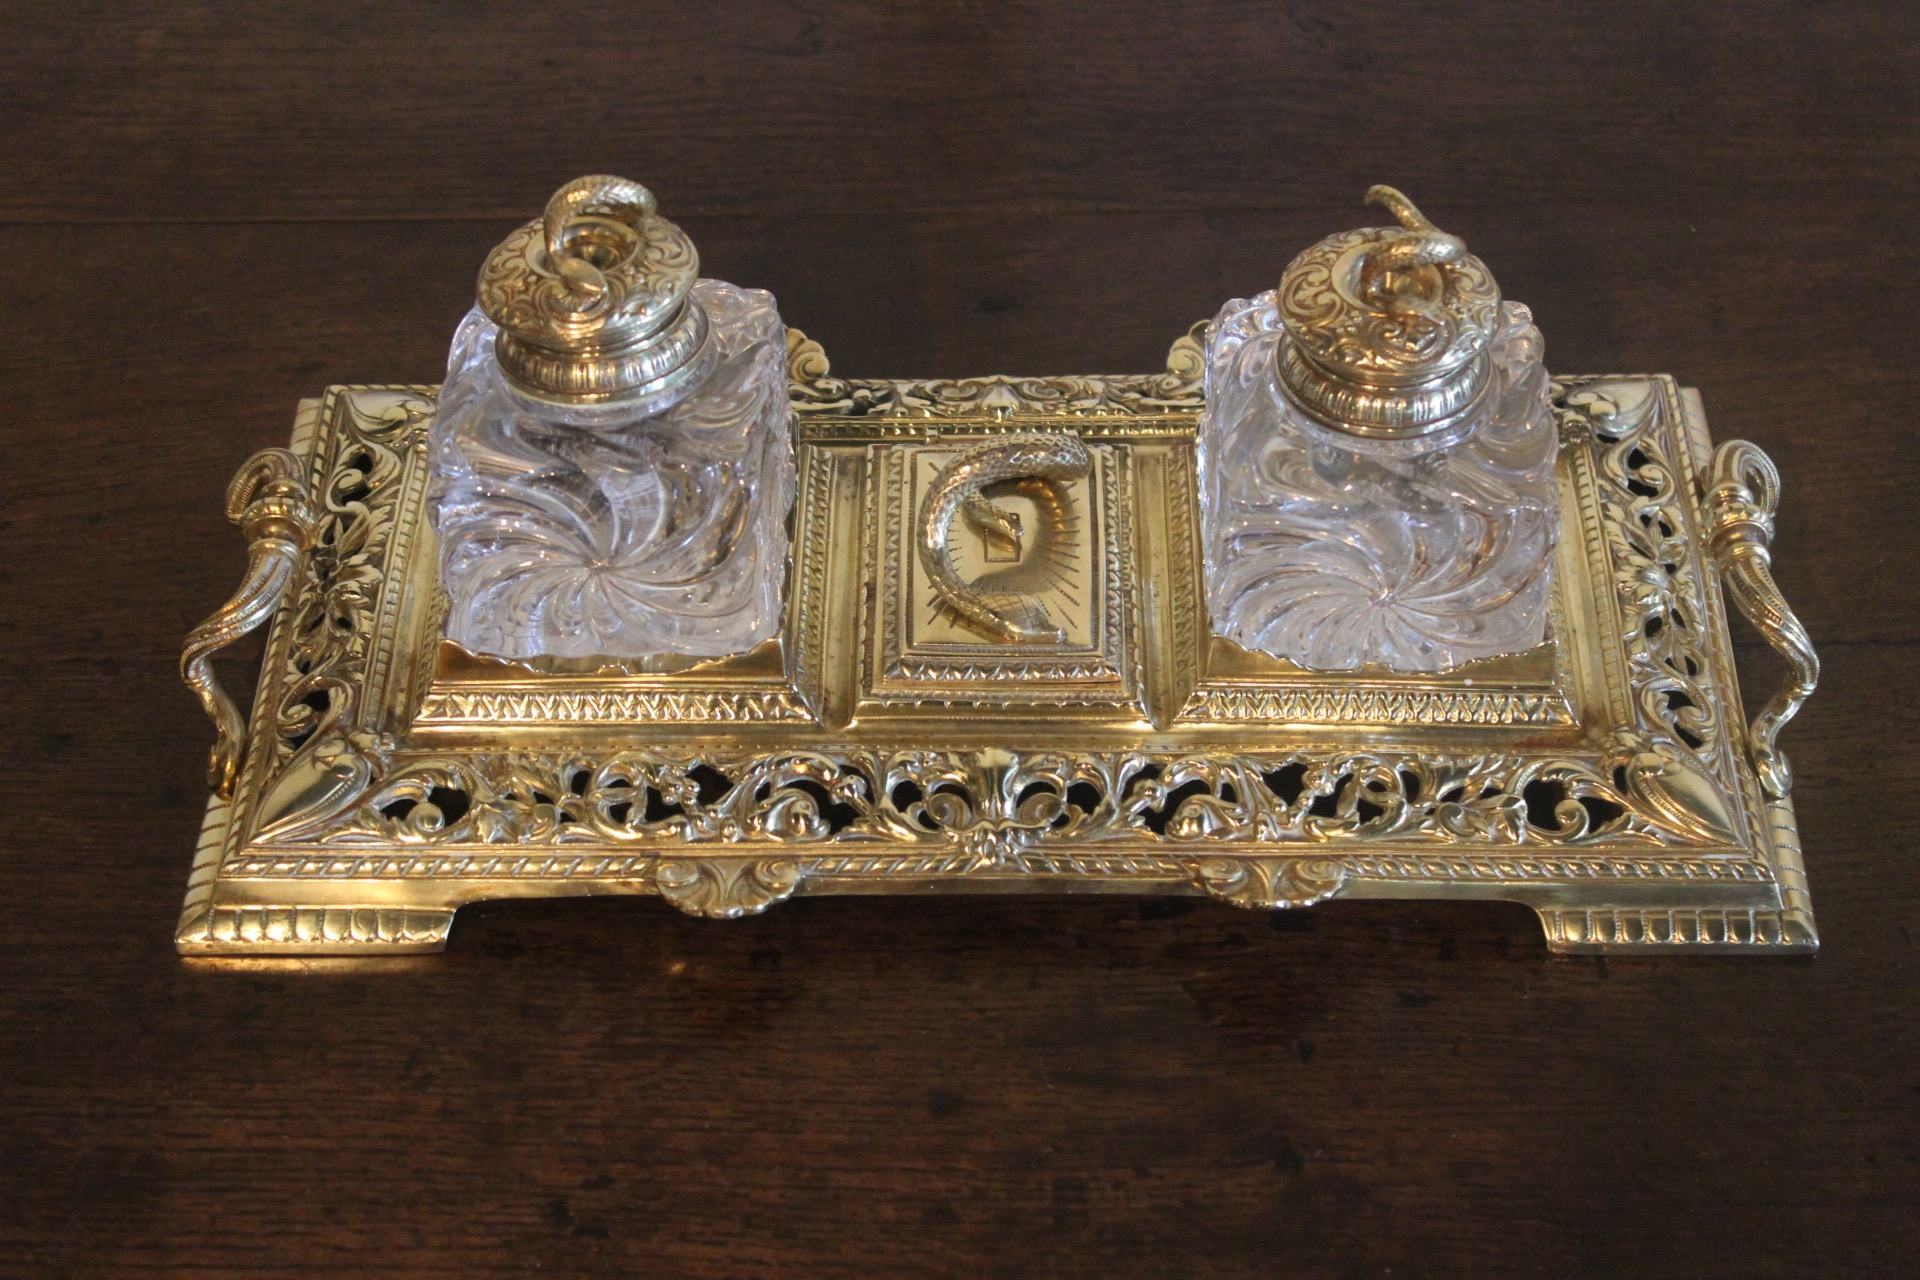 SOLD/19C STAMPED TOWNSHEND & CO. BRASS INKSTAND